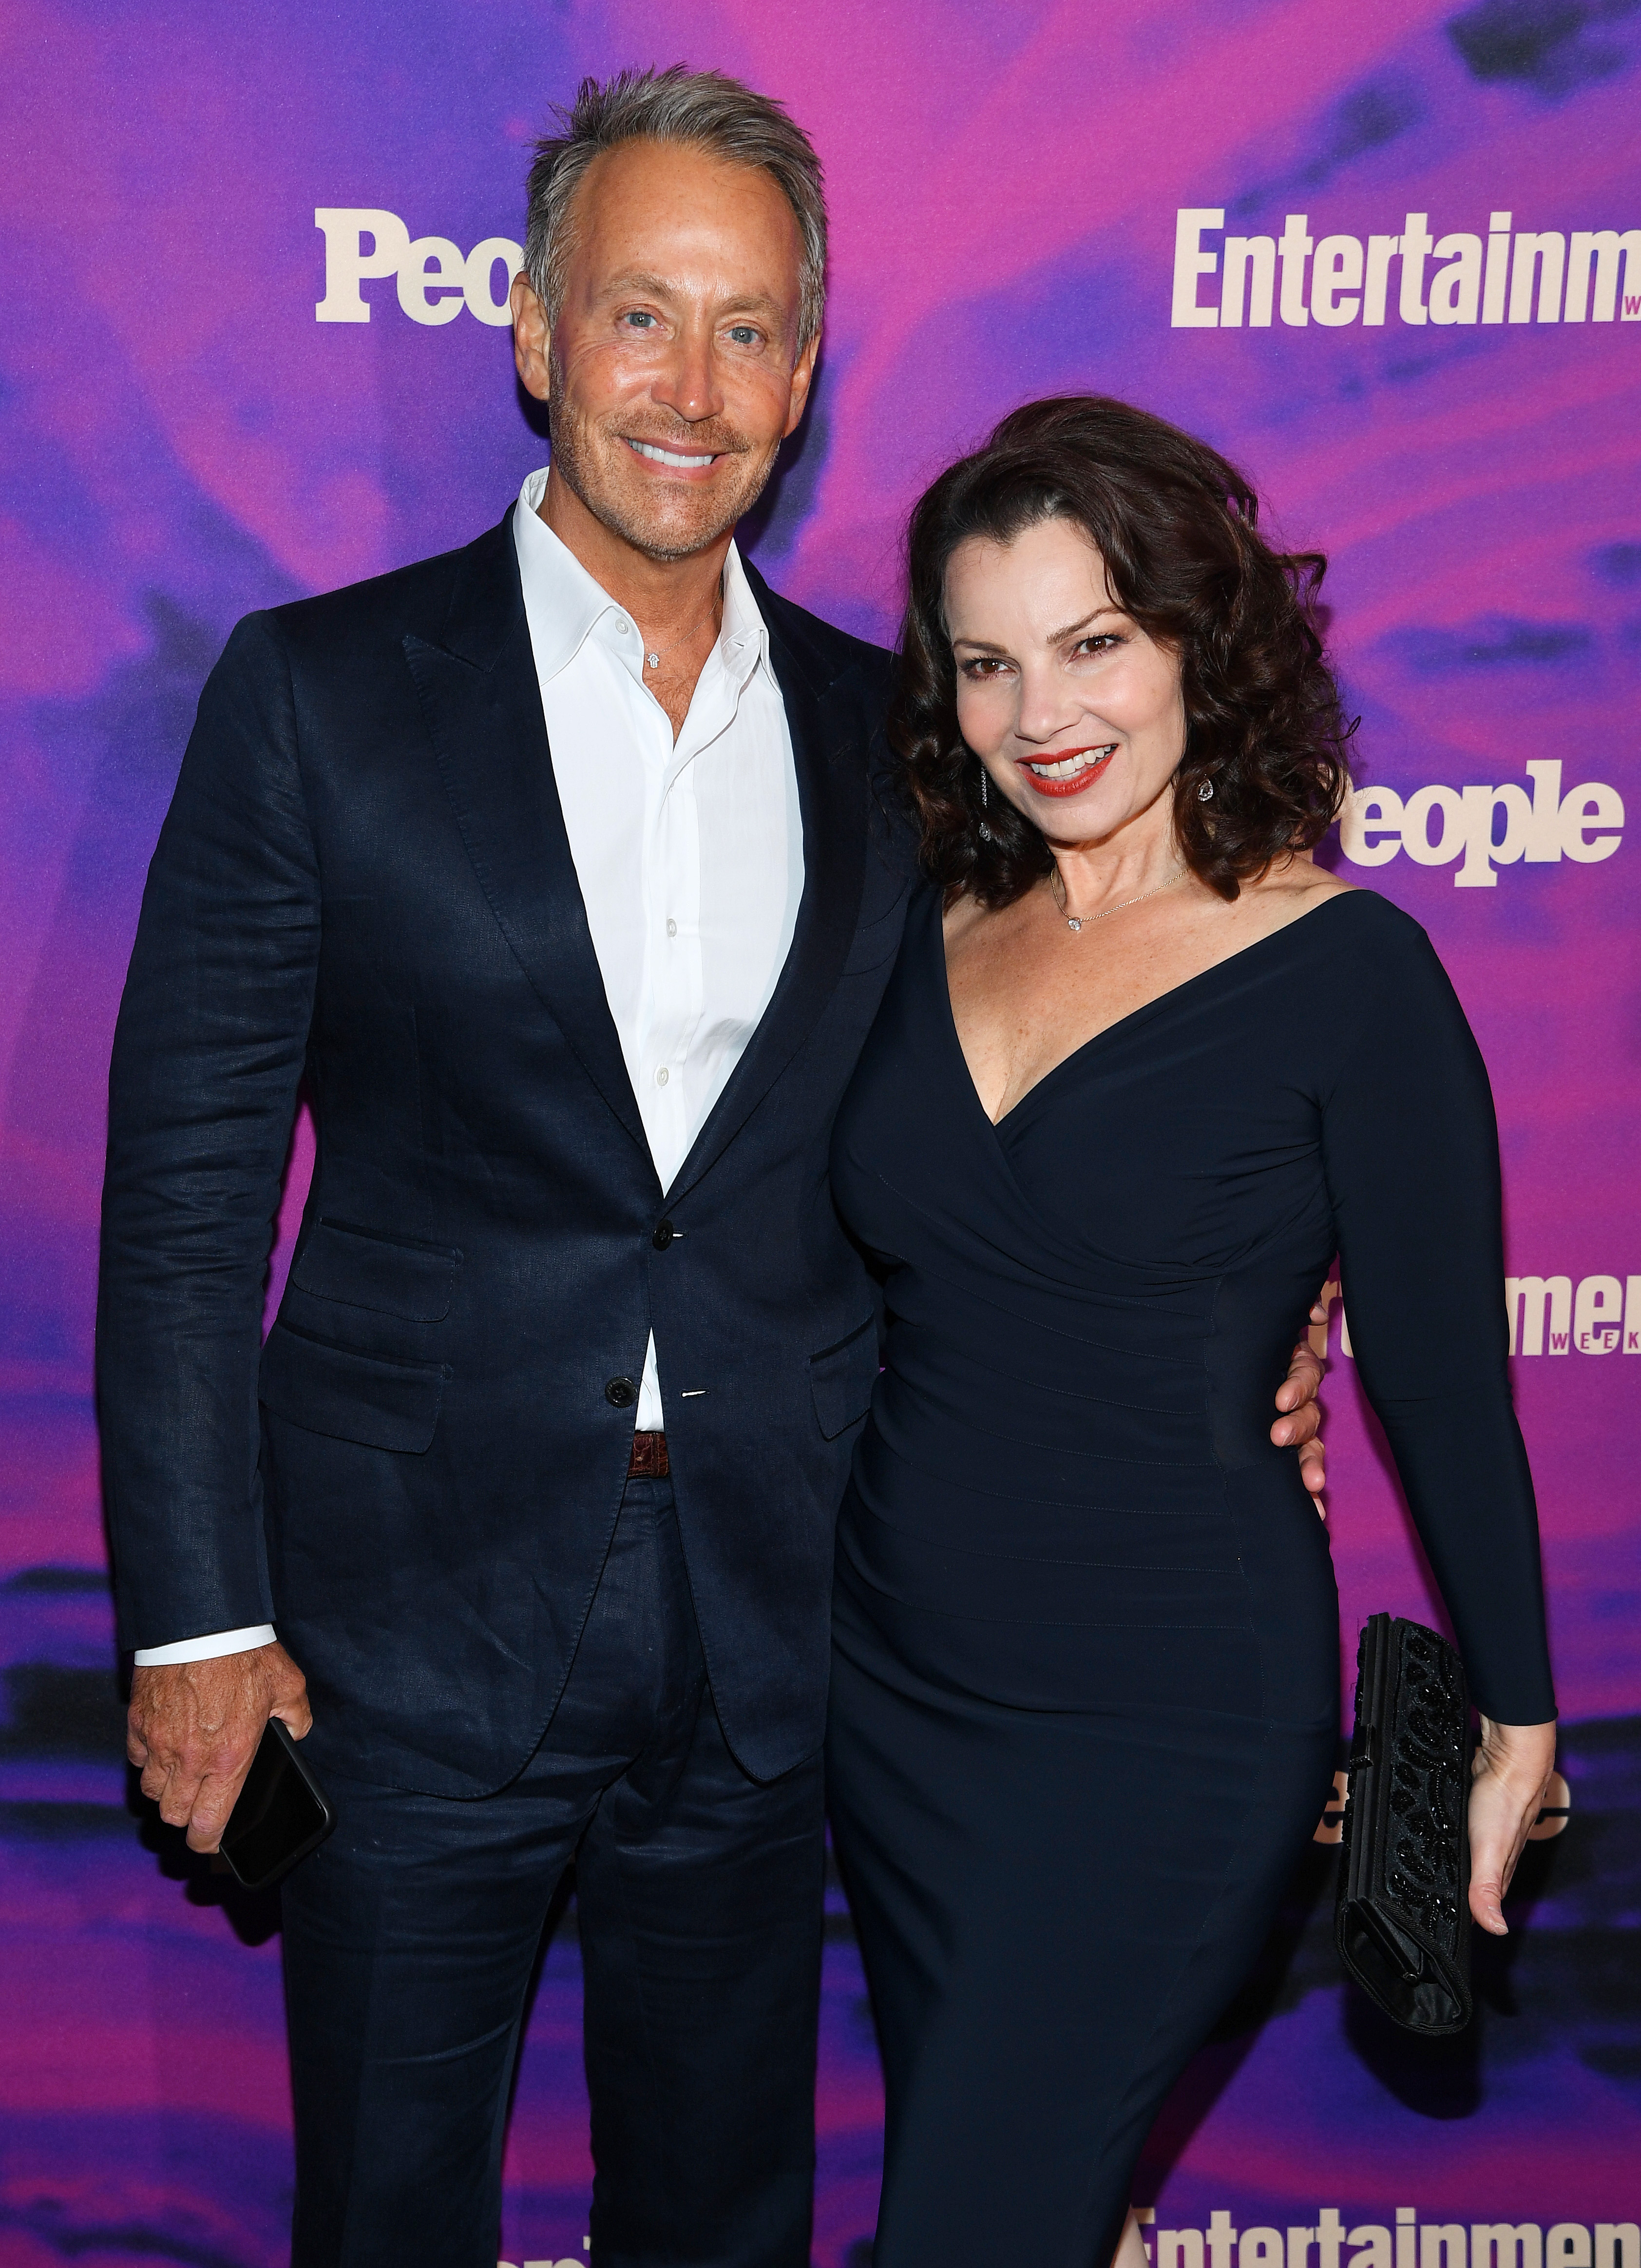 Fran Drescher (R) and Peter Marc Jacobson attend the Entertainment Weekly & PEOPLE New York Upfronts Party on May 13, 2019 in New York City. (Photo by Dimitrios Kambouris/Getty Images for Entertainment Weekly & PEOPLE)